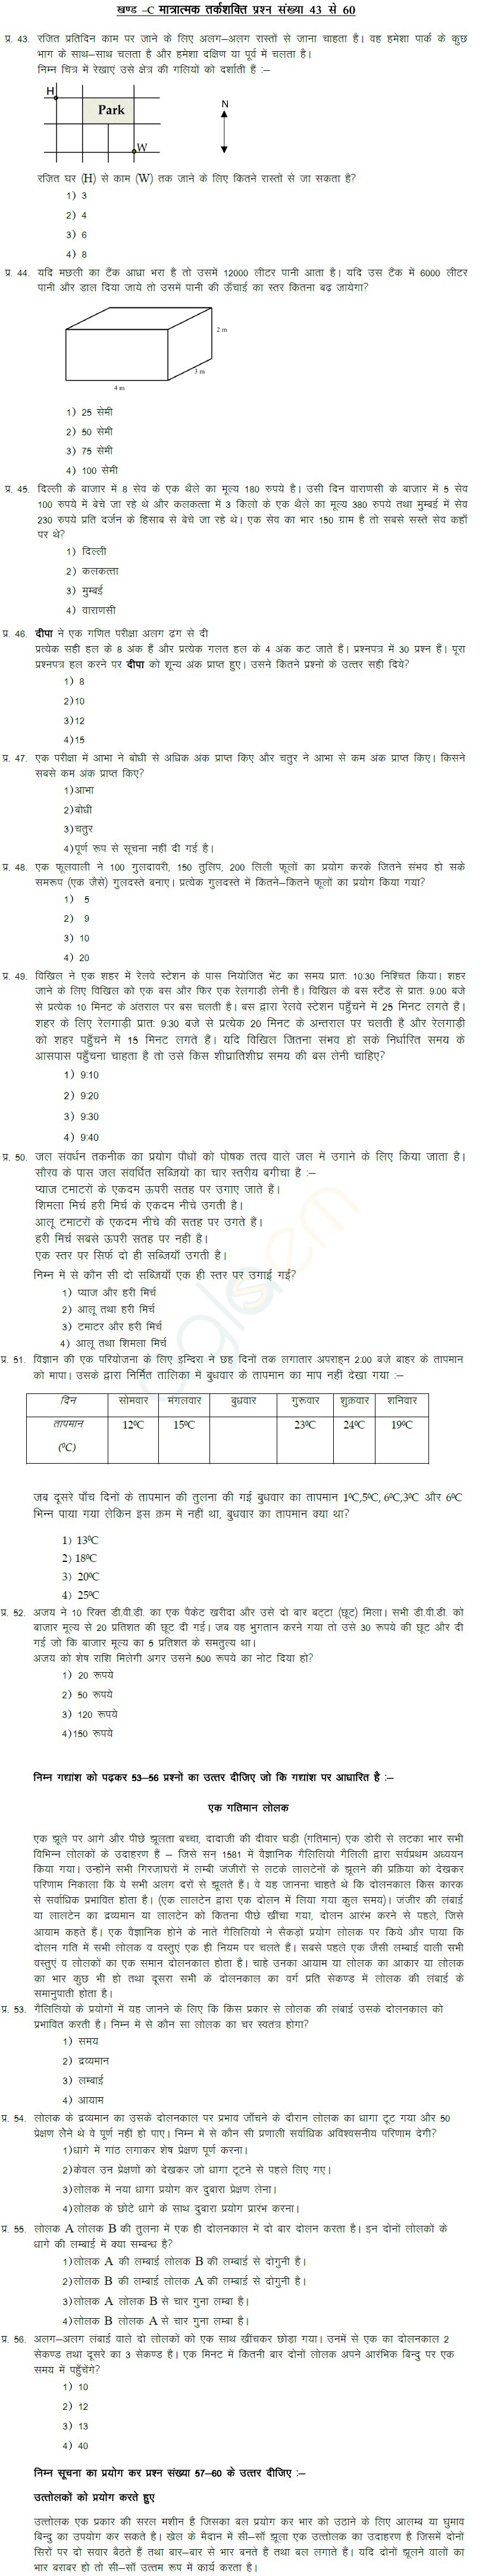 Class IX CBSE Sample Papers 2013 (in Hindi)